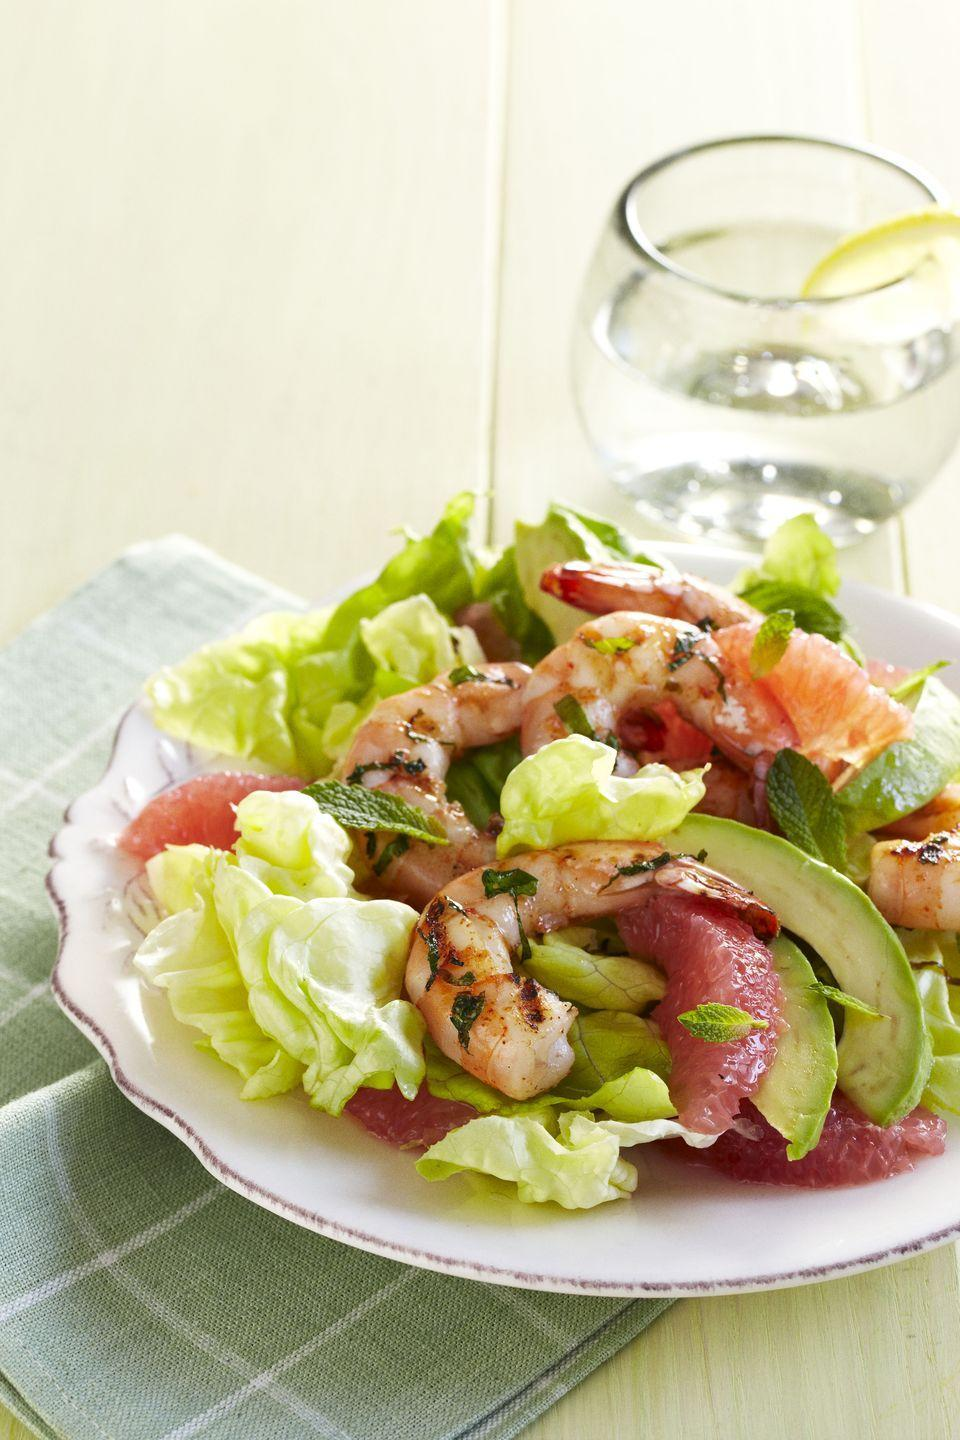 """<p>If you're into fresh ingredients with a bit of a kick, this combo of tart grapefruit, creamy avocado, and spicy grilled shrimp will check all the boxes. </p><p><em><a href=""""https://www.goodhousekeeping.com/food-recipes/a10984/lime-shrimp-avocado-grapefruit-salad-recipe-ghk0511/"""" rel=""""nofollow noopener"""" target=""""_blank"""" data-ylk=""""slk:Get the recipe for Lime-Rubbed Shrimp with Avocado-Grapefruit Salad »"""" class=""""link rapid-noclick-resp"""">Get the recipe for Lime-Rubbed Shrimp with Avocado-Grapefruit Salad »</a></em> </p>"""